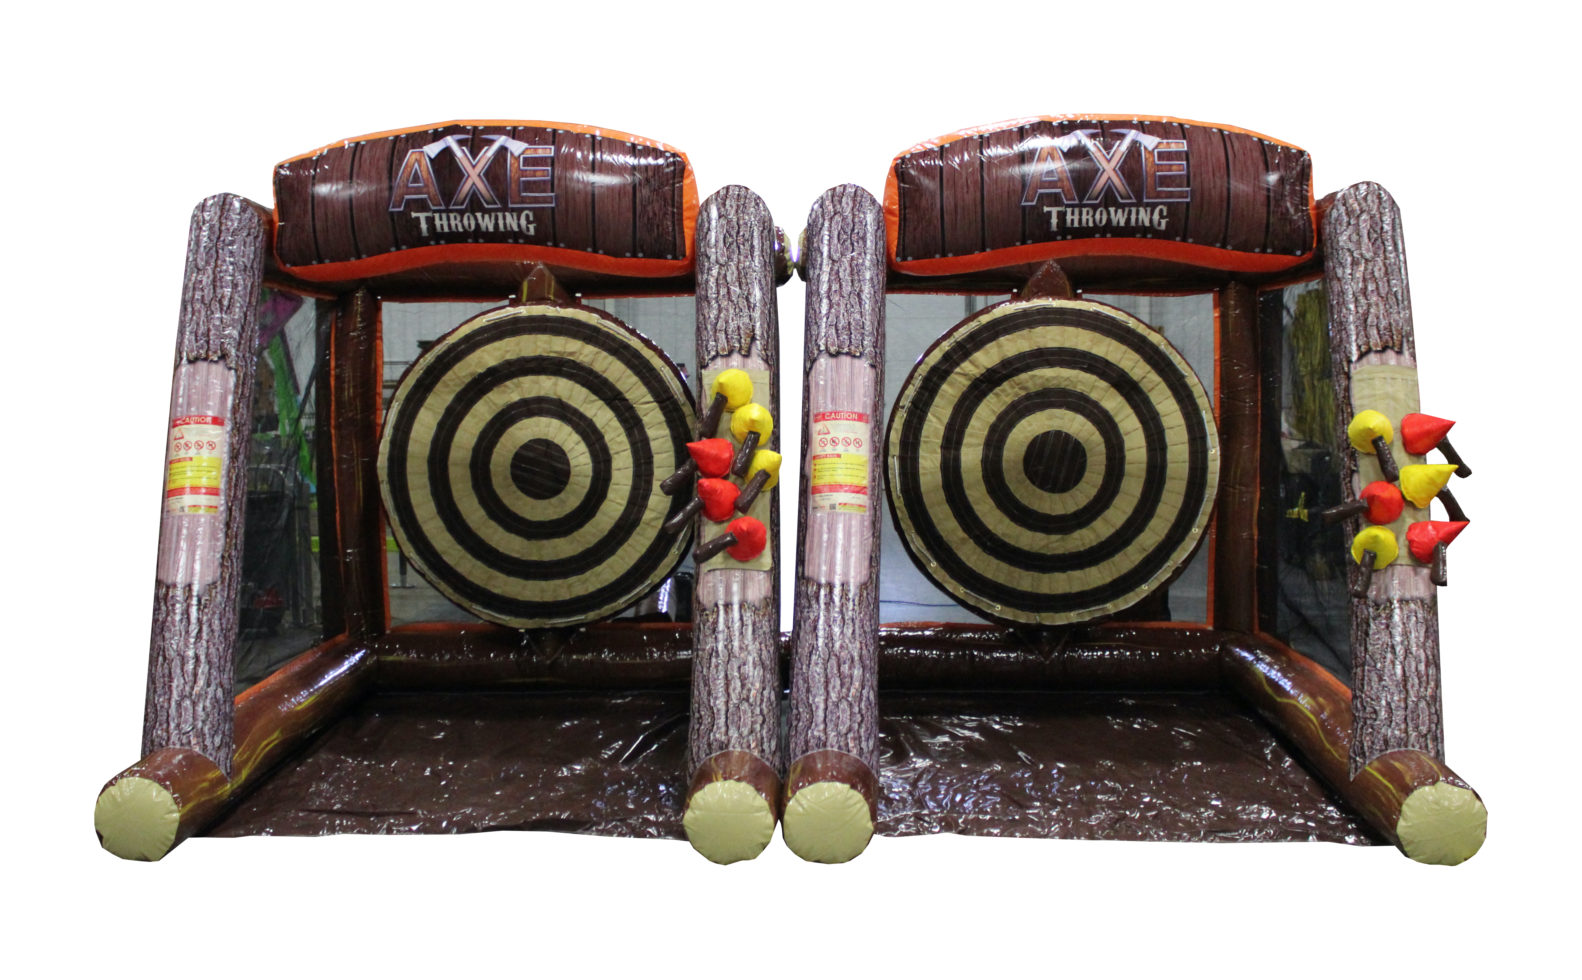 Inflatable axe throwing grand rapids michigan